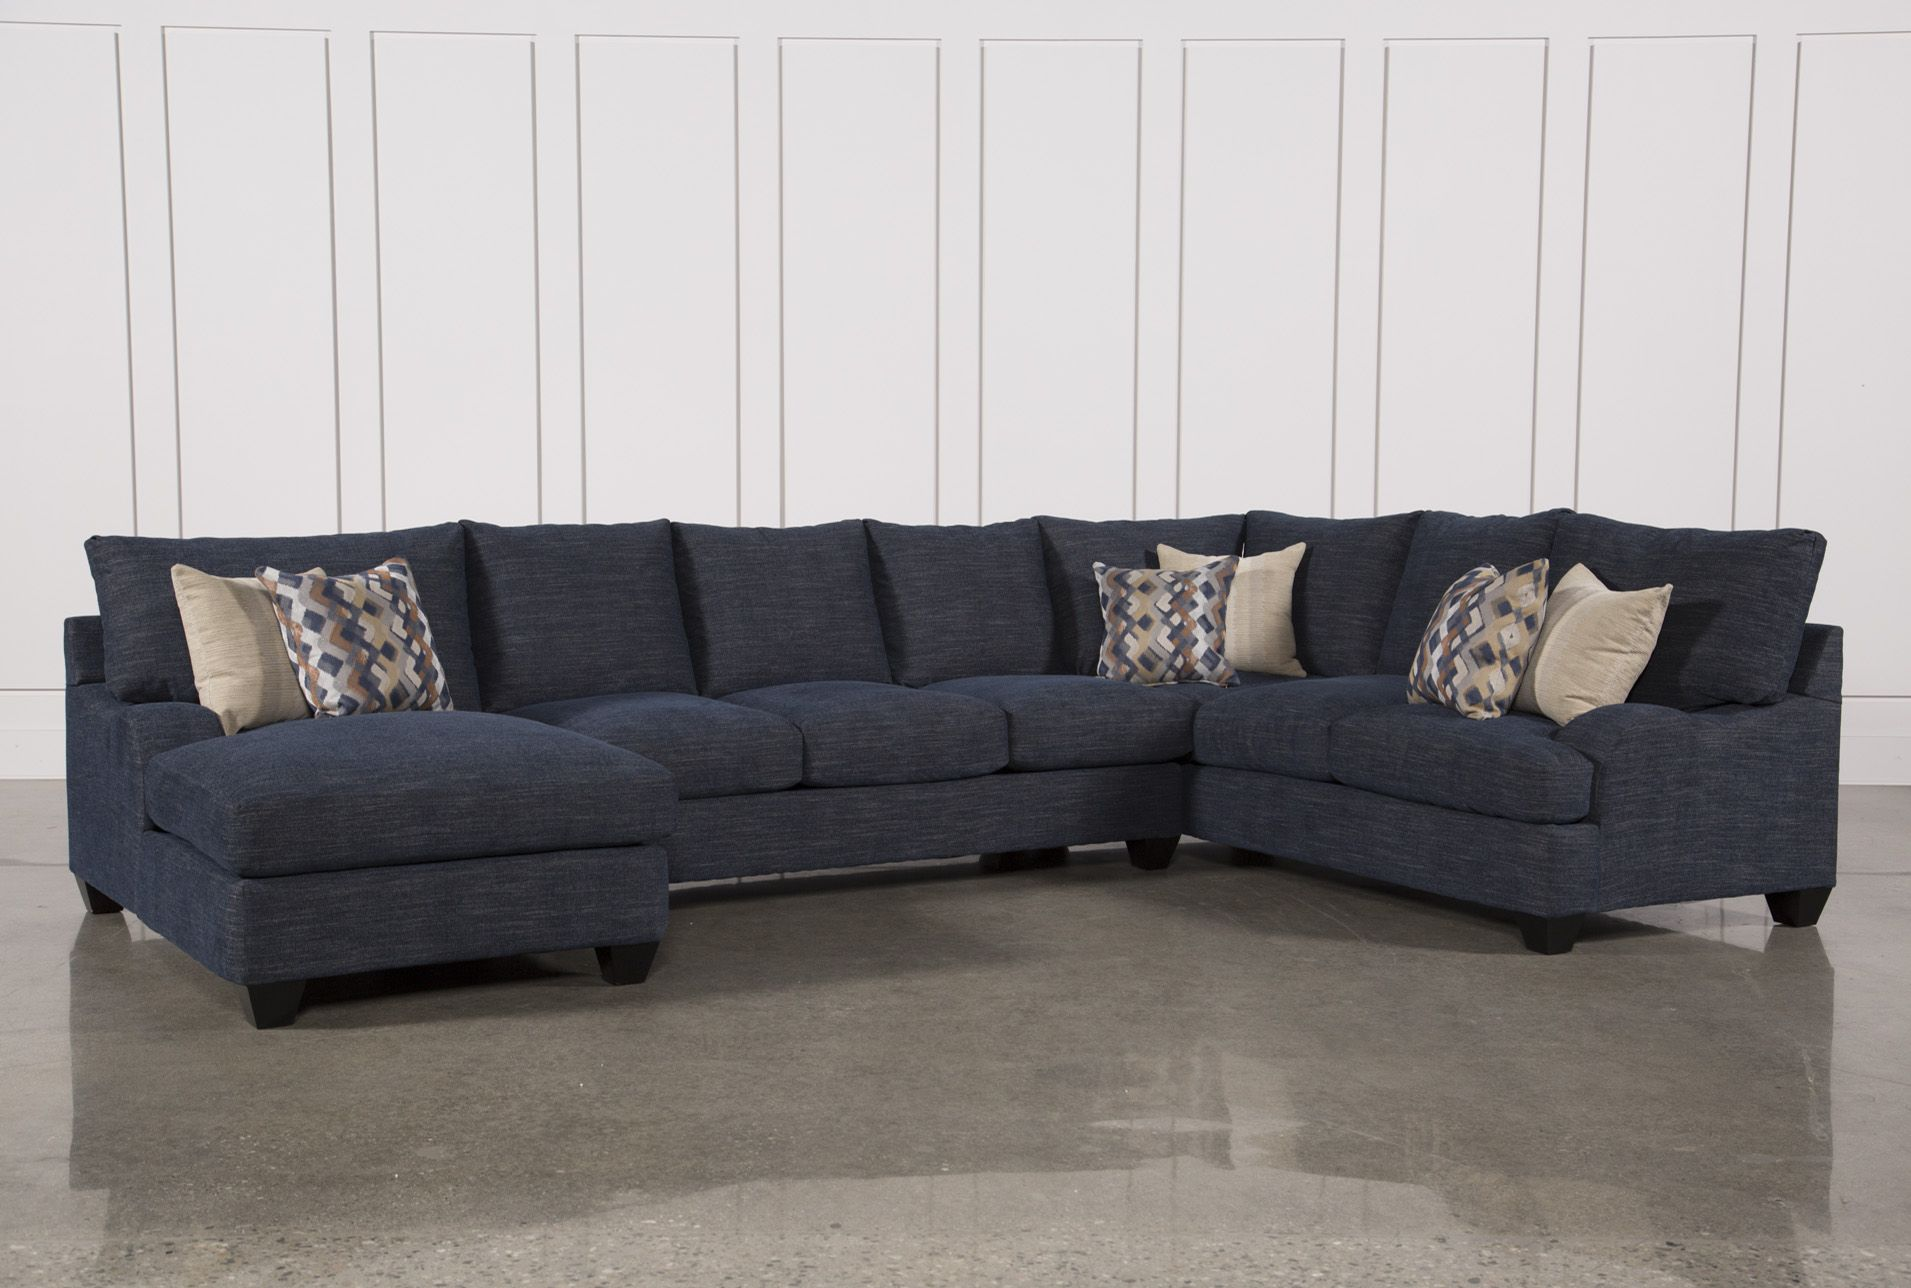 Beau Sierra Down 3 Piece Sectional W/Laf Chaise, Blue, Sofas